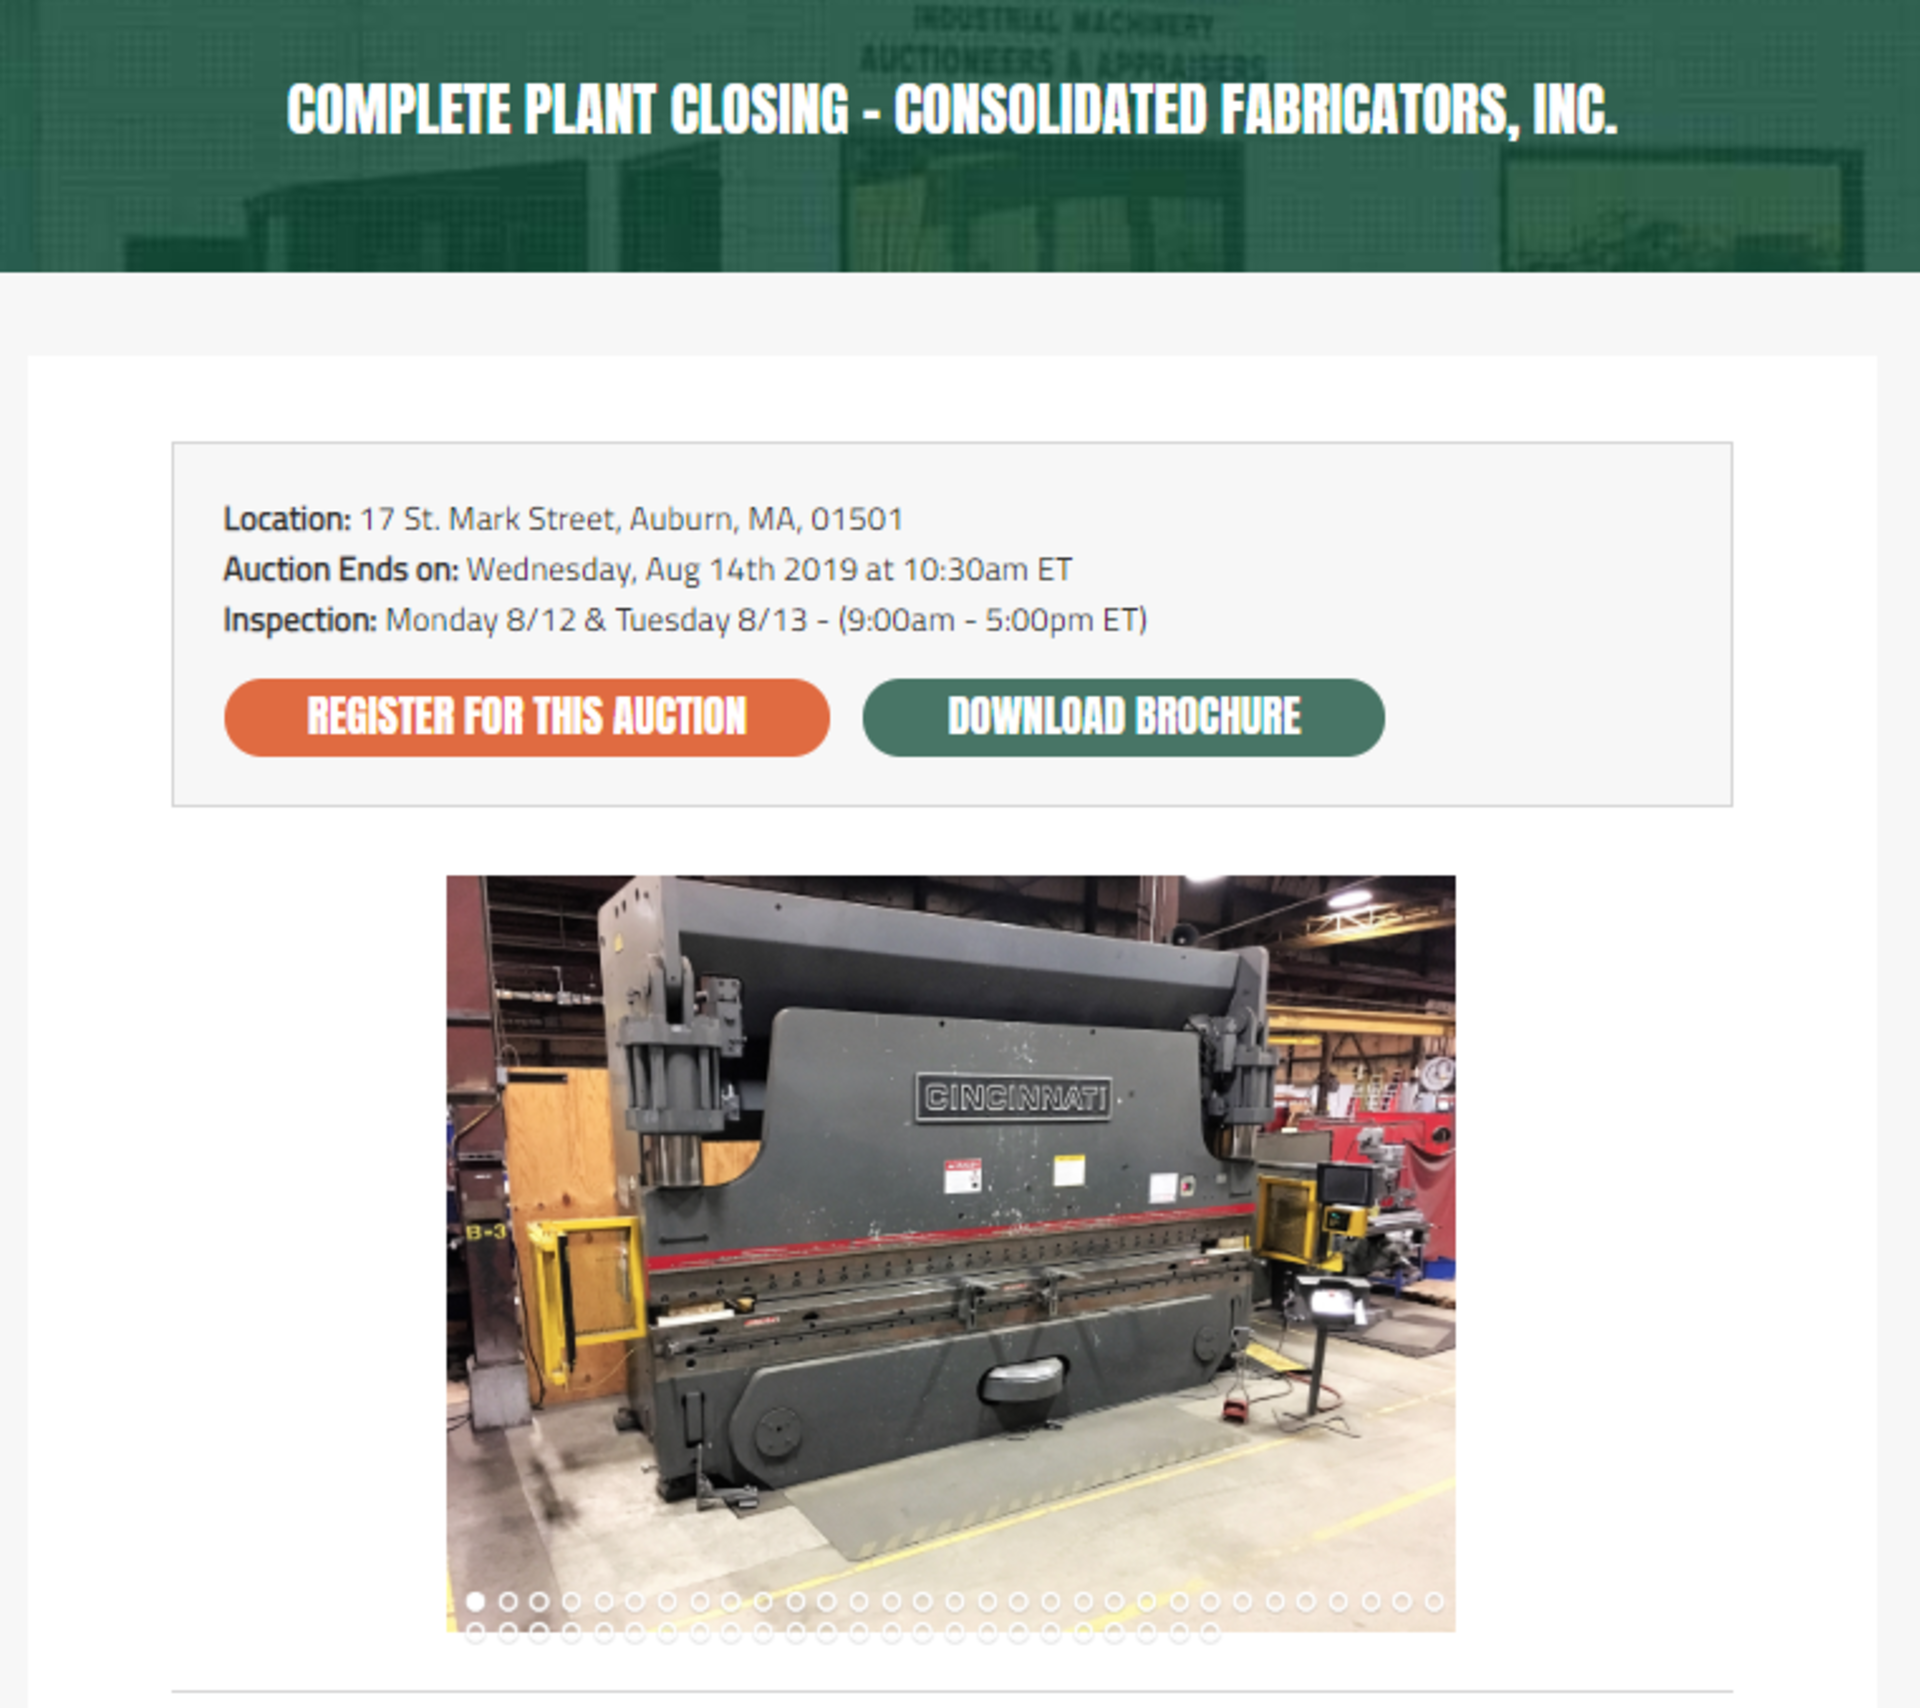 Lot 1 - This auction is conducted on DeCosmo Industrial Auctions website.